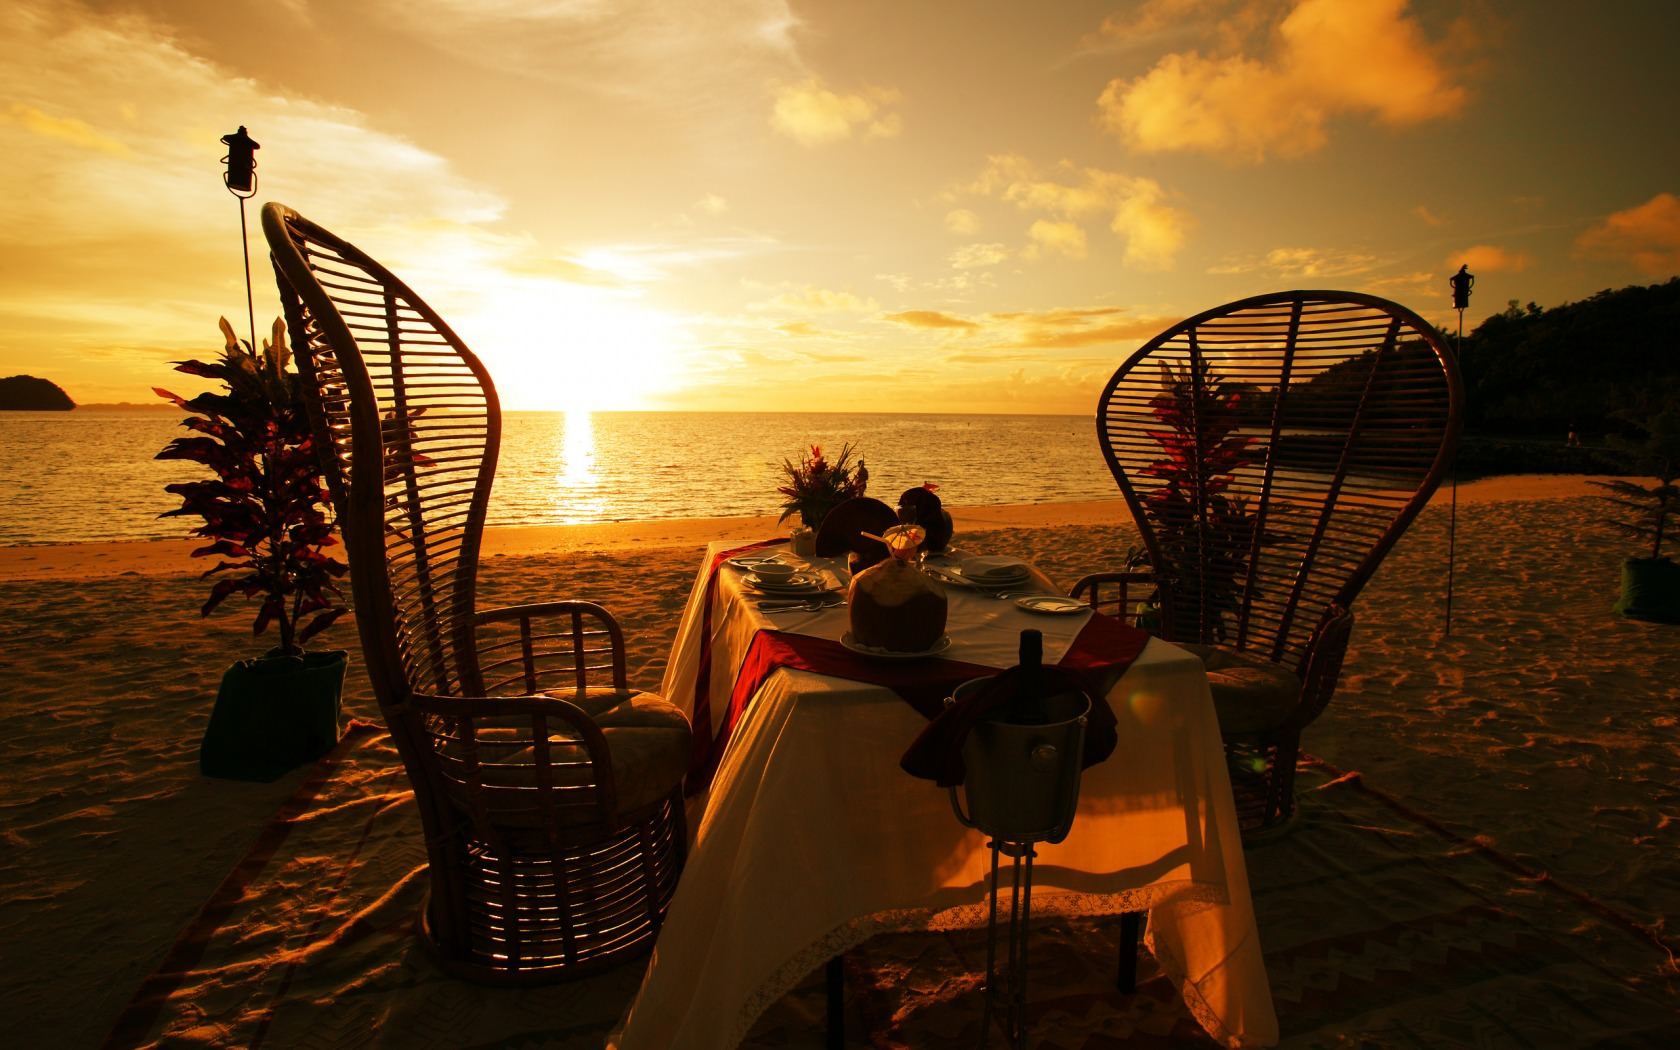 Sunset Dinner Background